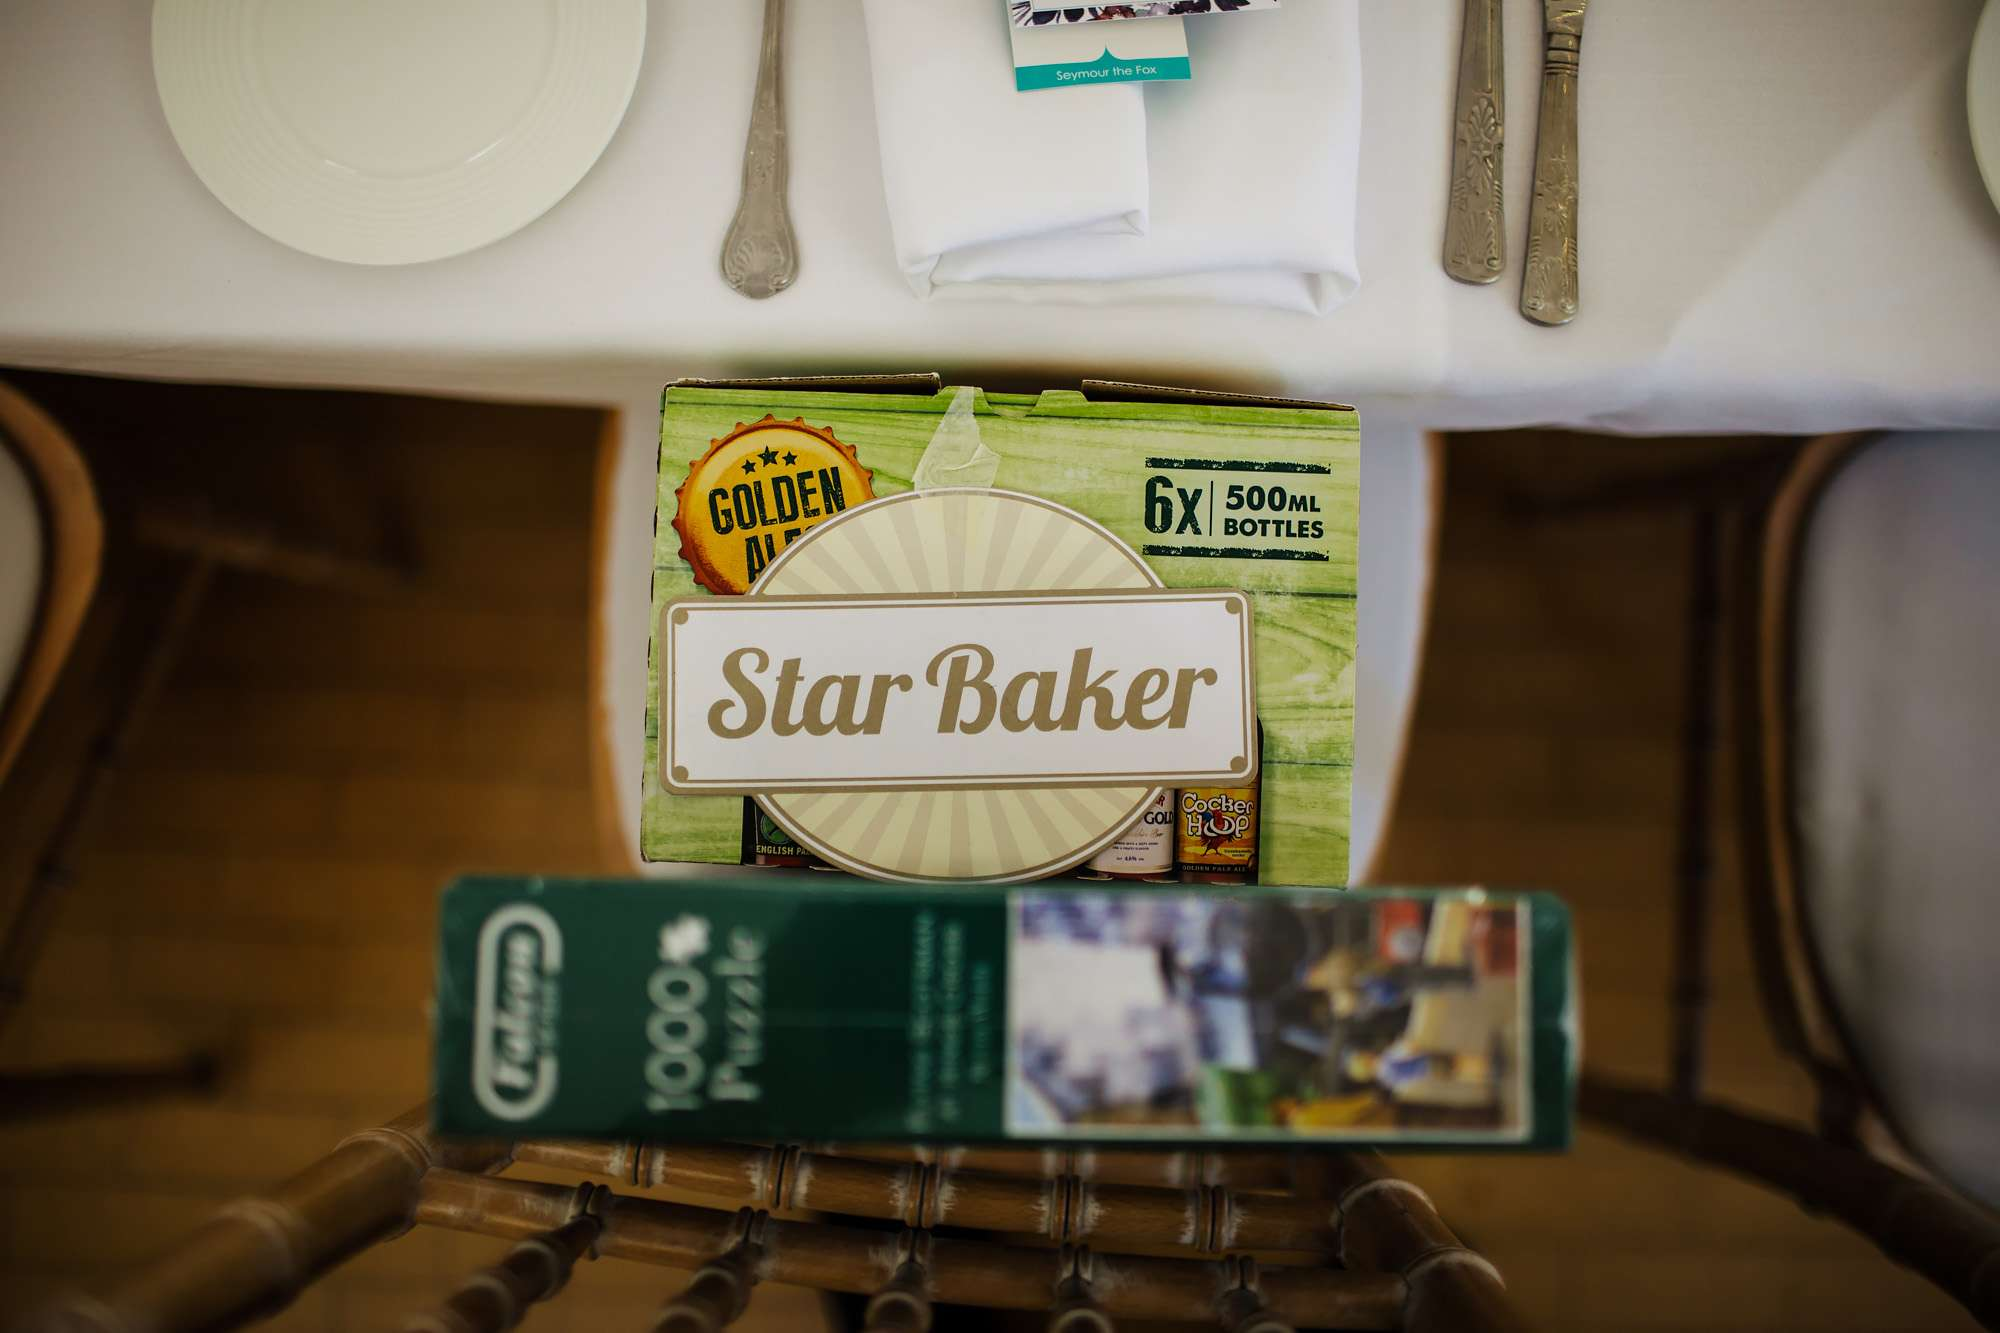 Star baker prize at a wedding